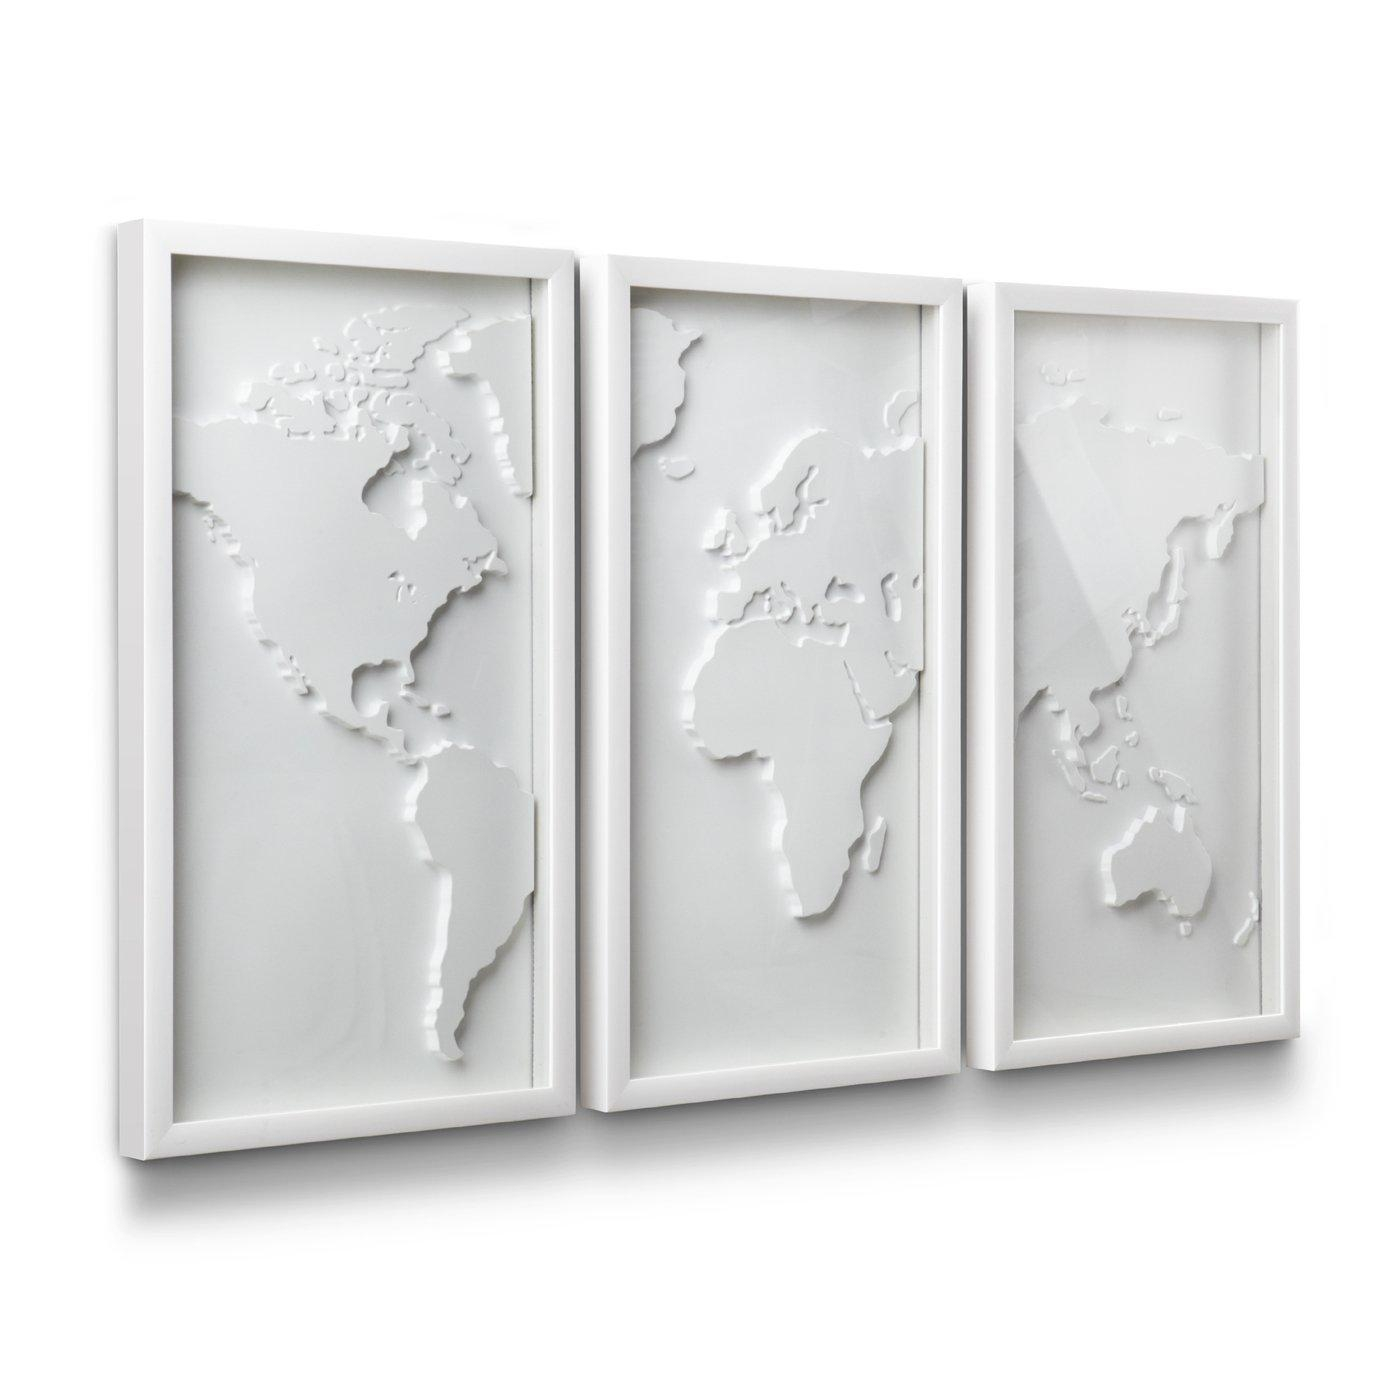 3D Wall Art | Wall Sculptures | Lowe's Canada With Regard To White 3D Wall Art (View 3 of 20)